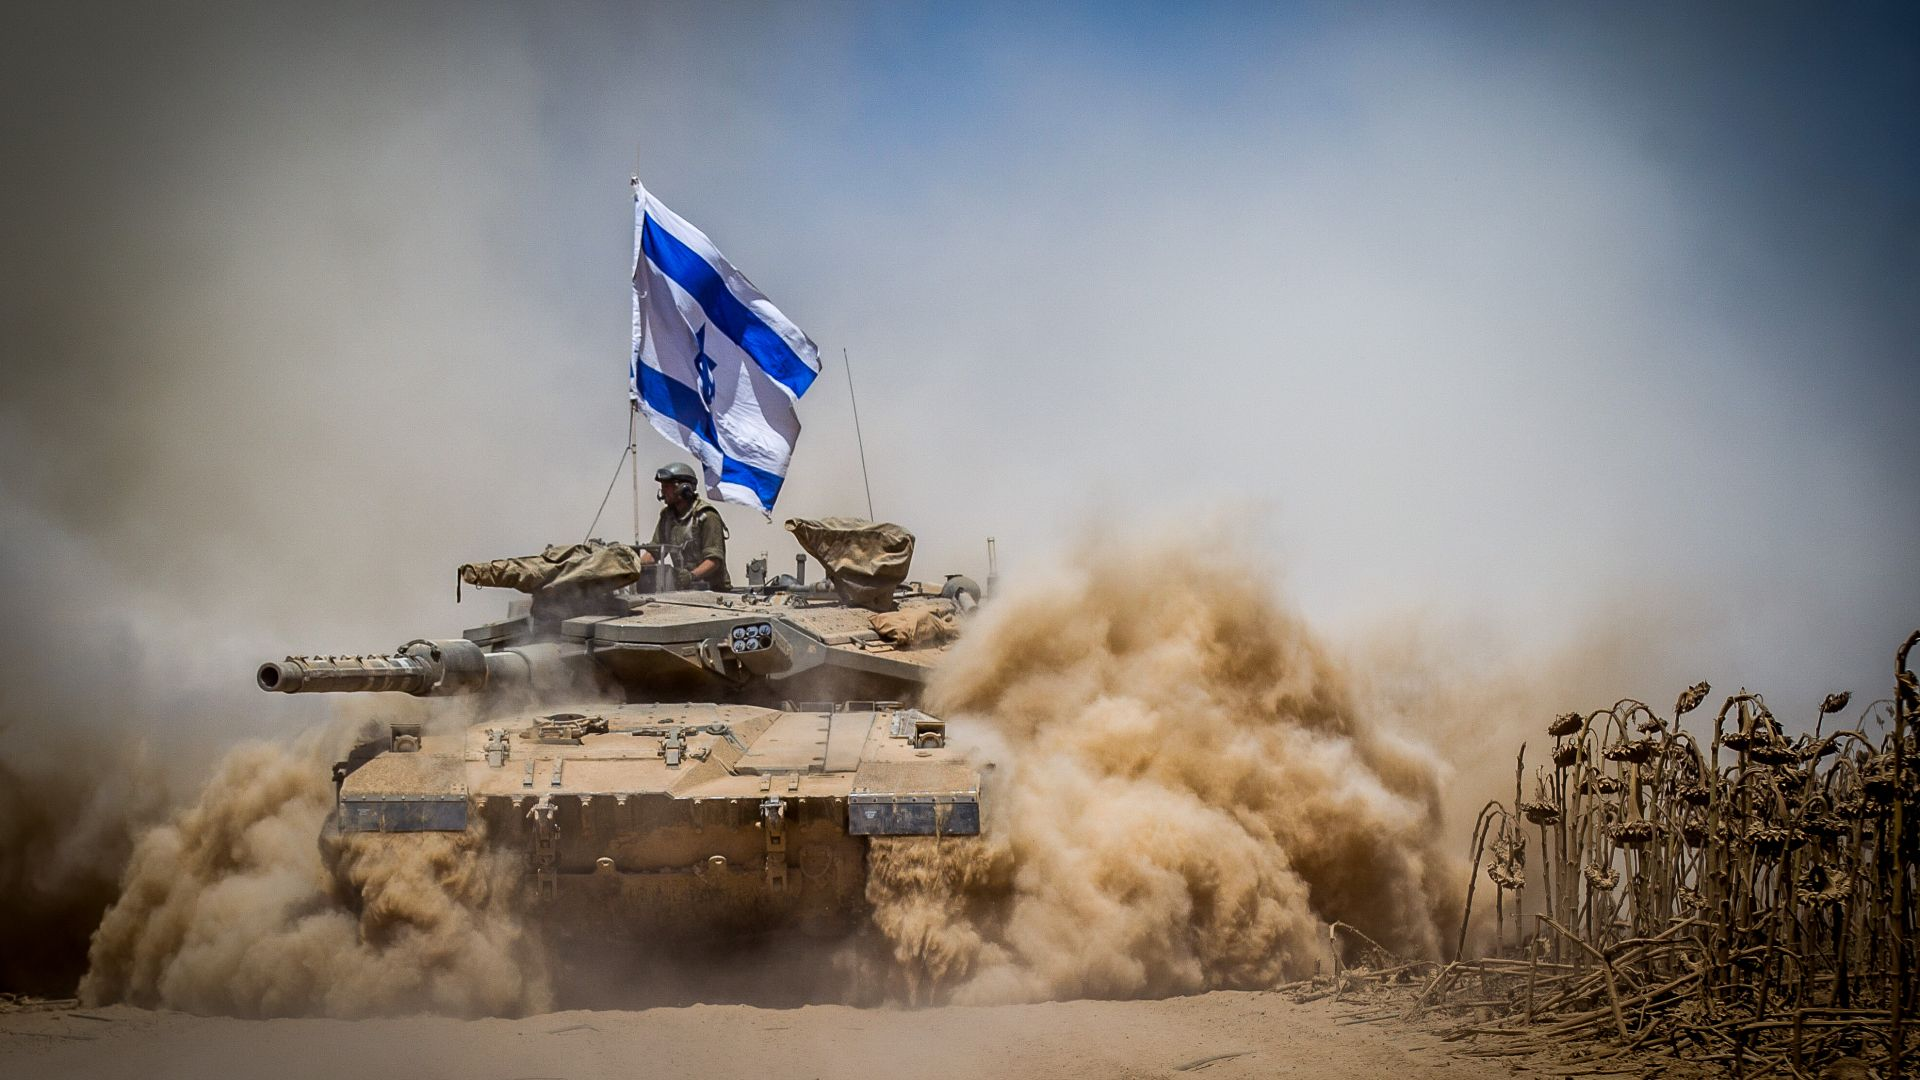 Merkava Mark IV, tank, flag, Israel Army, Israel Defense Forces, desert (horizontal)